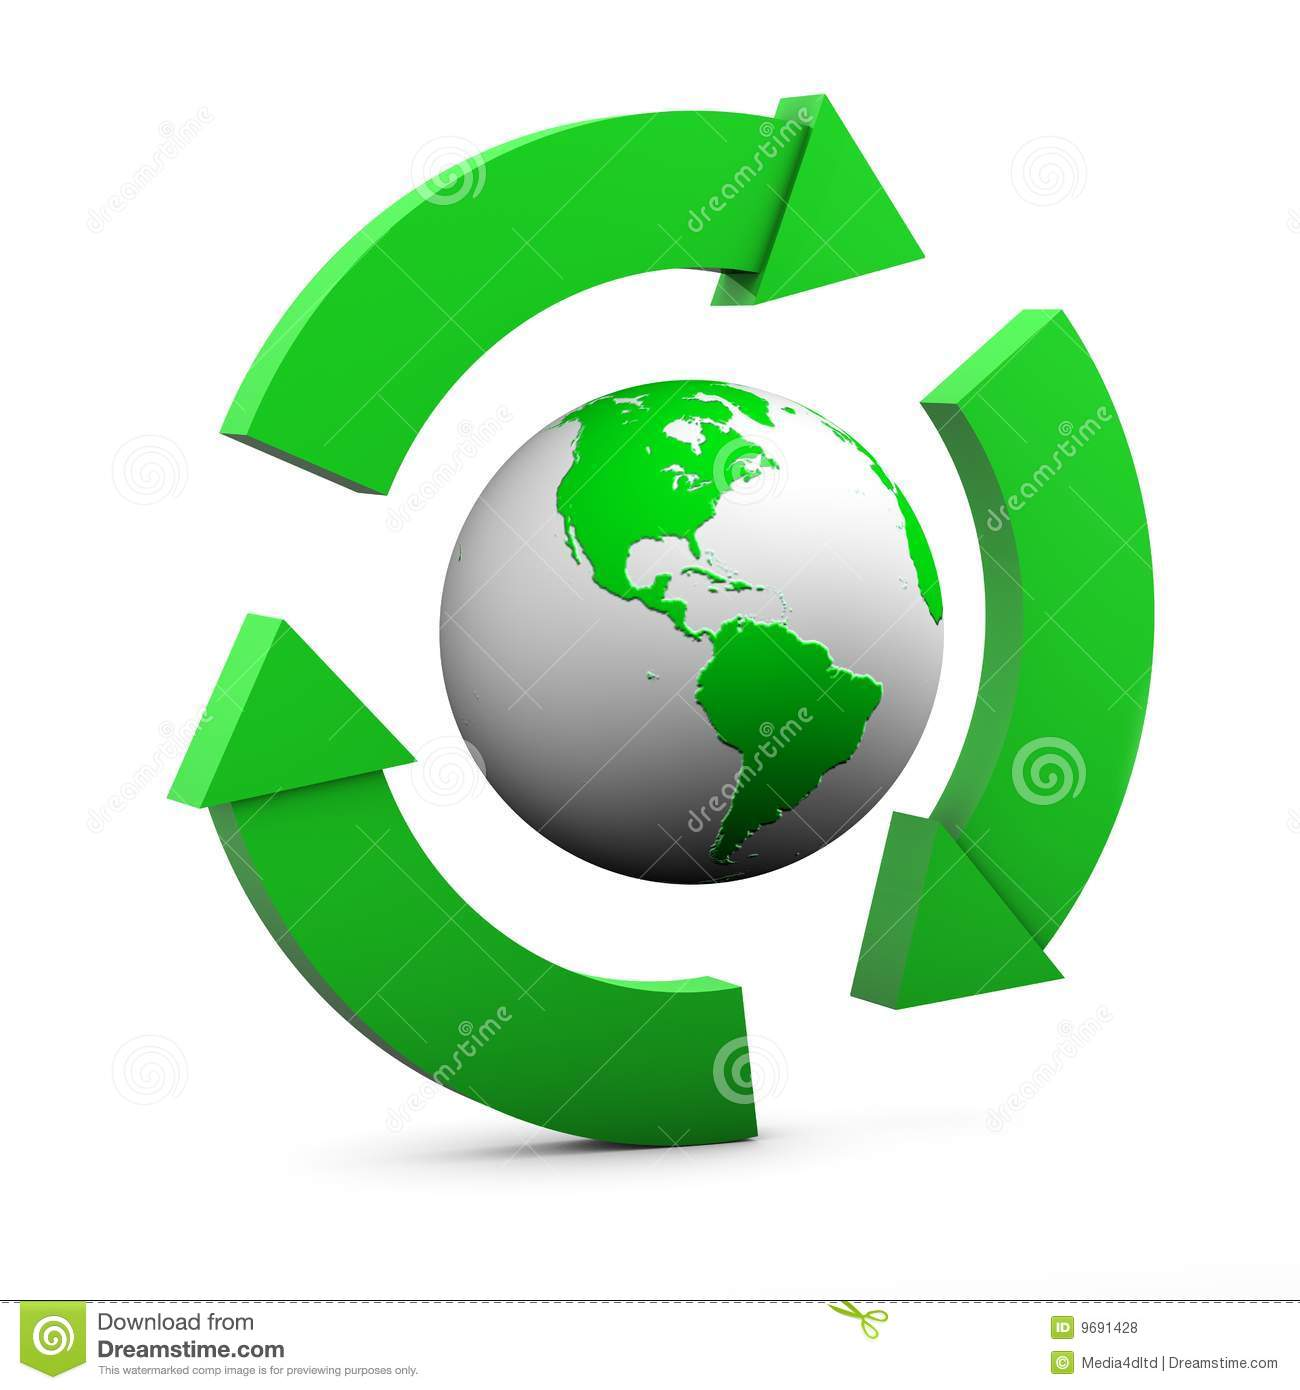 Environmental Sign with globe showing USA in green on white background ...